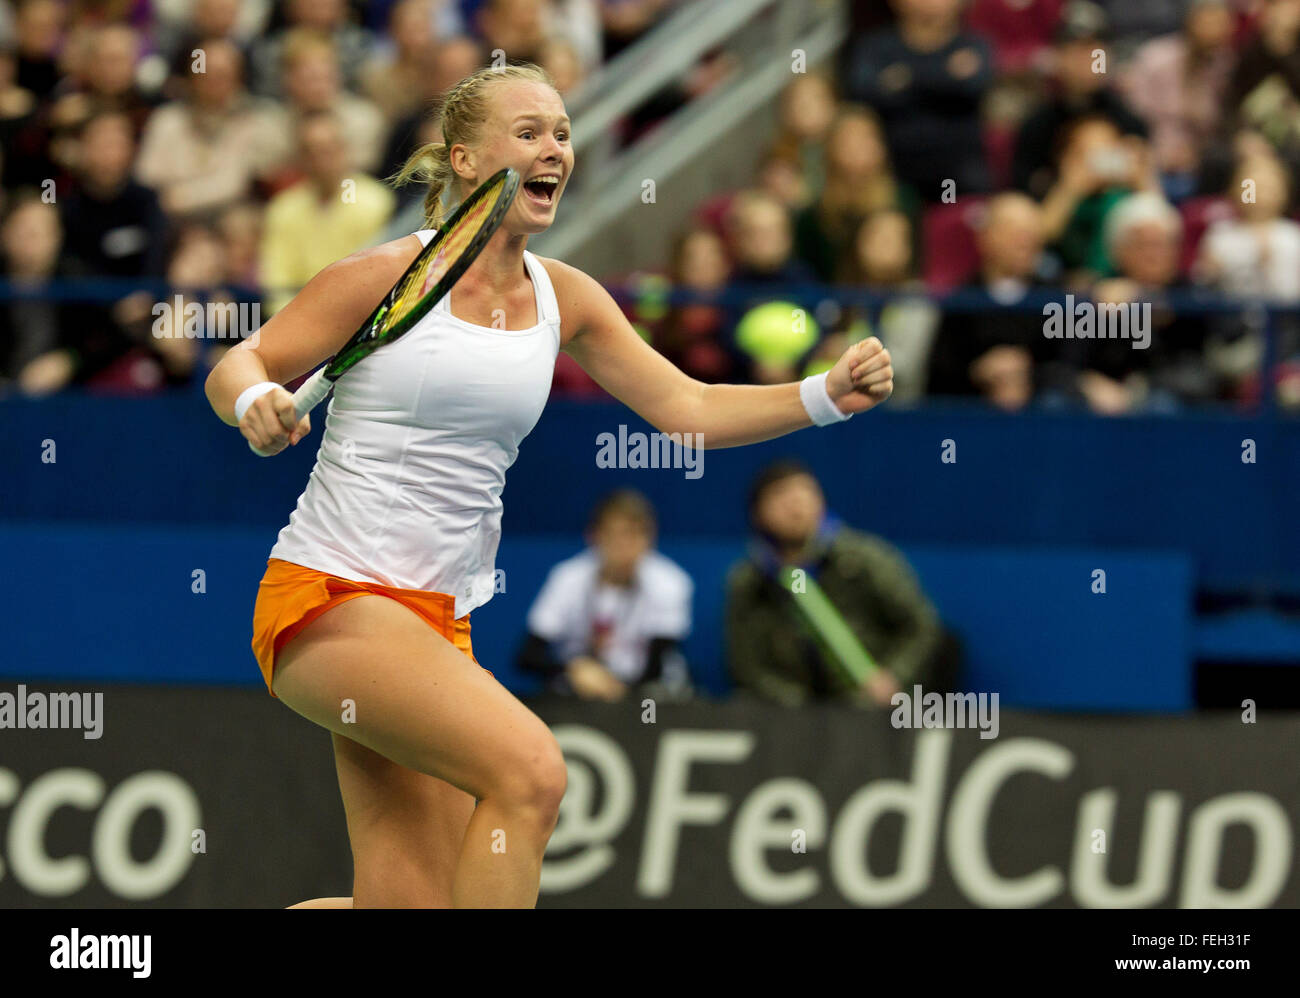 Moskou, Russia. 7th February, 2016.  Fed Cup Russia-Netherlands, Kiki Bertens (NED) scrums it out , she just put - Stock Image